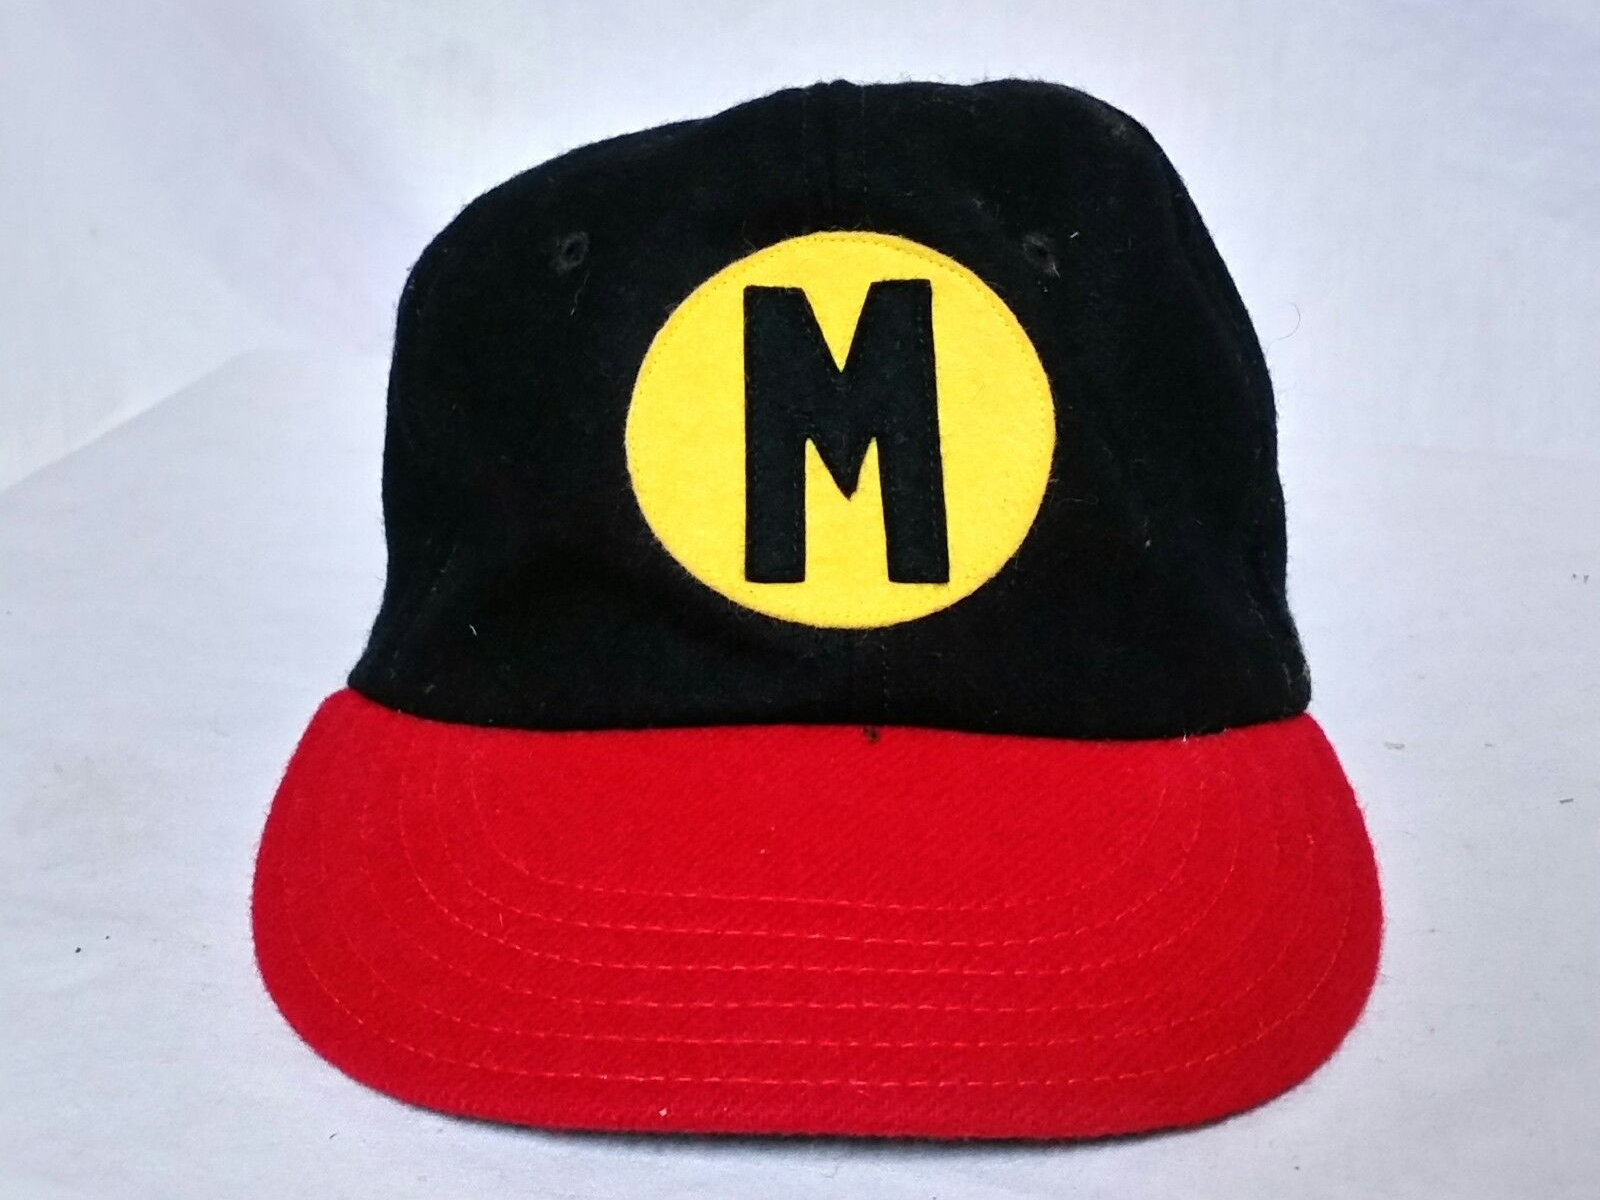 34183a6f3 The cap they offered for Milwaukee was black with a red bill and squatchee